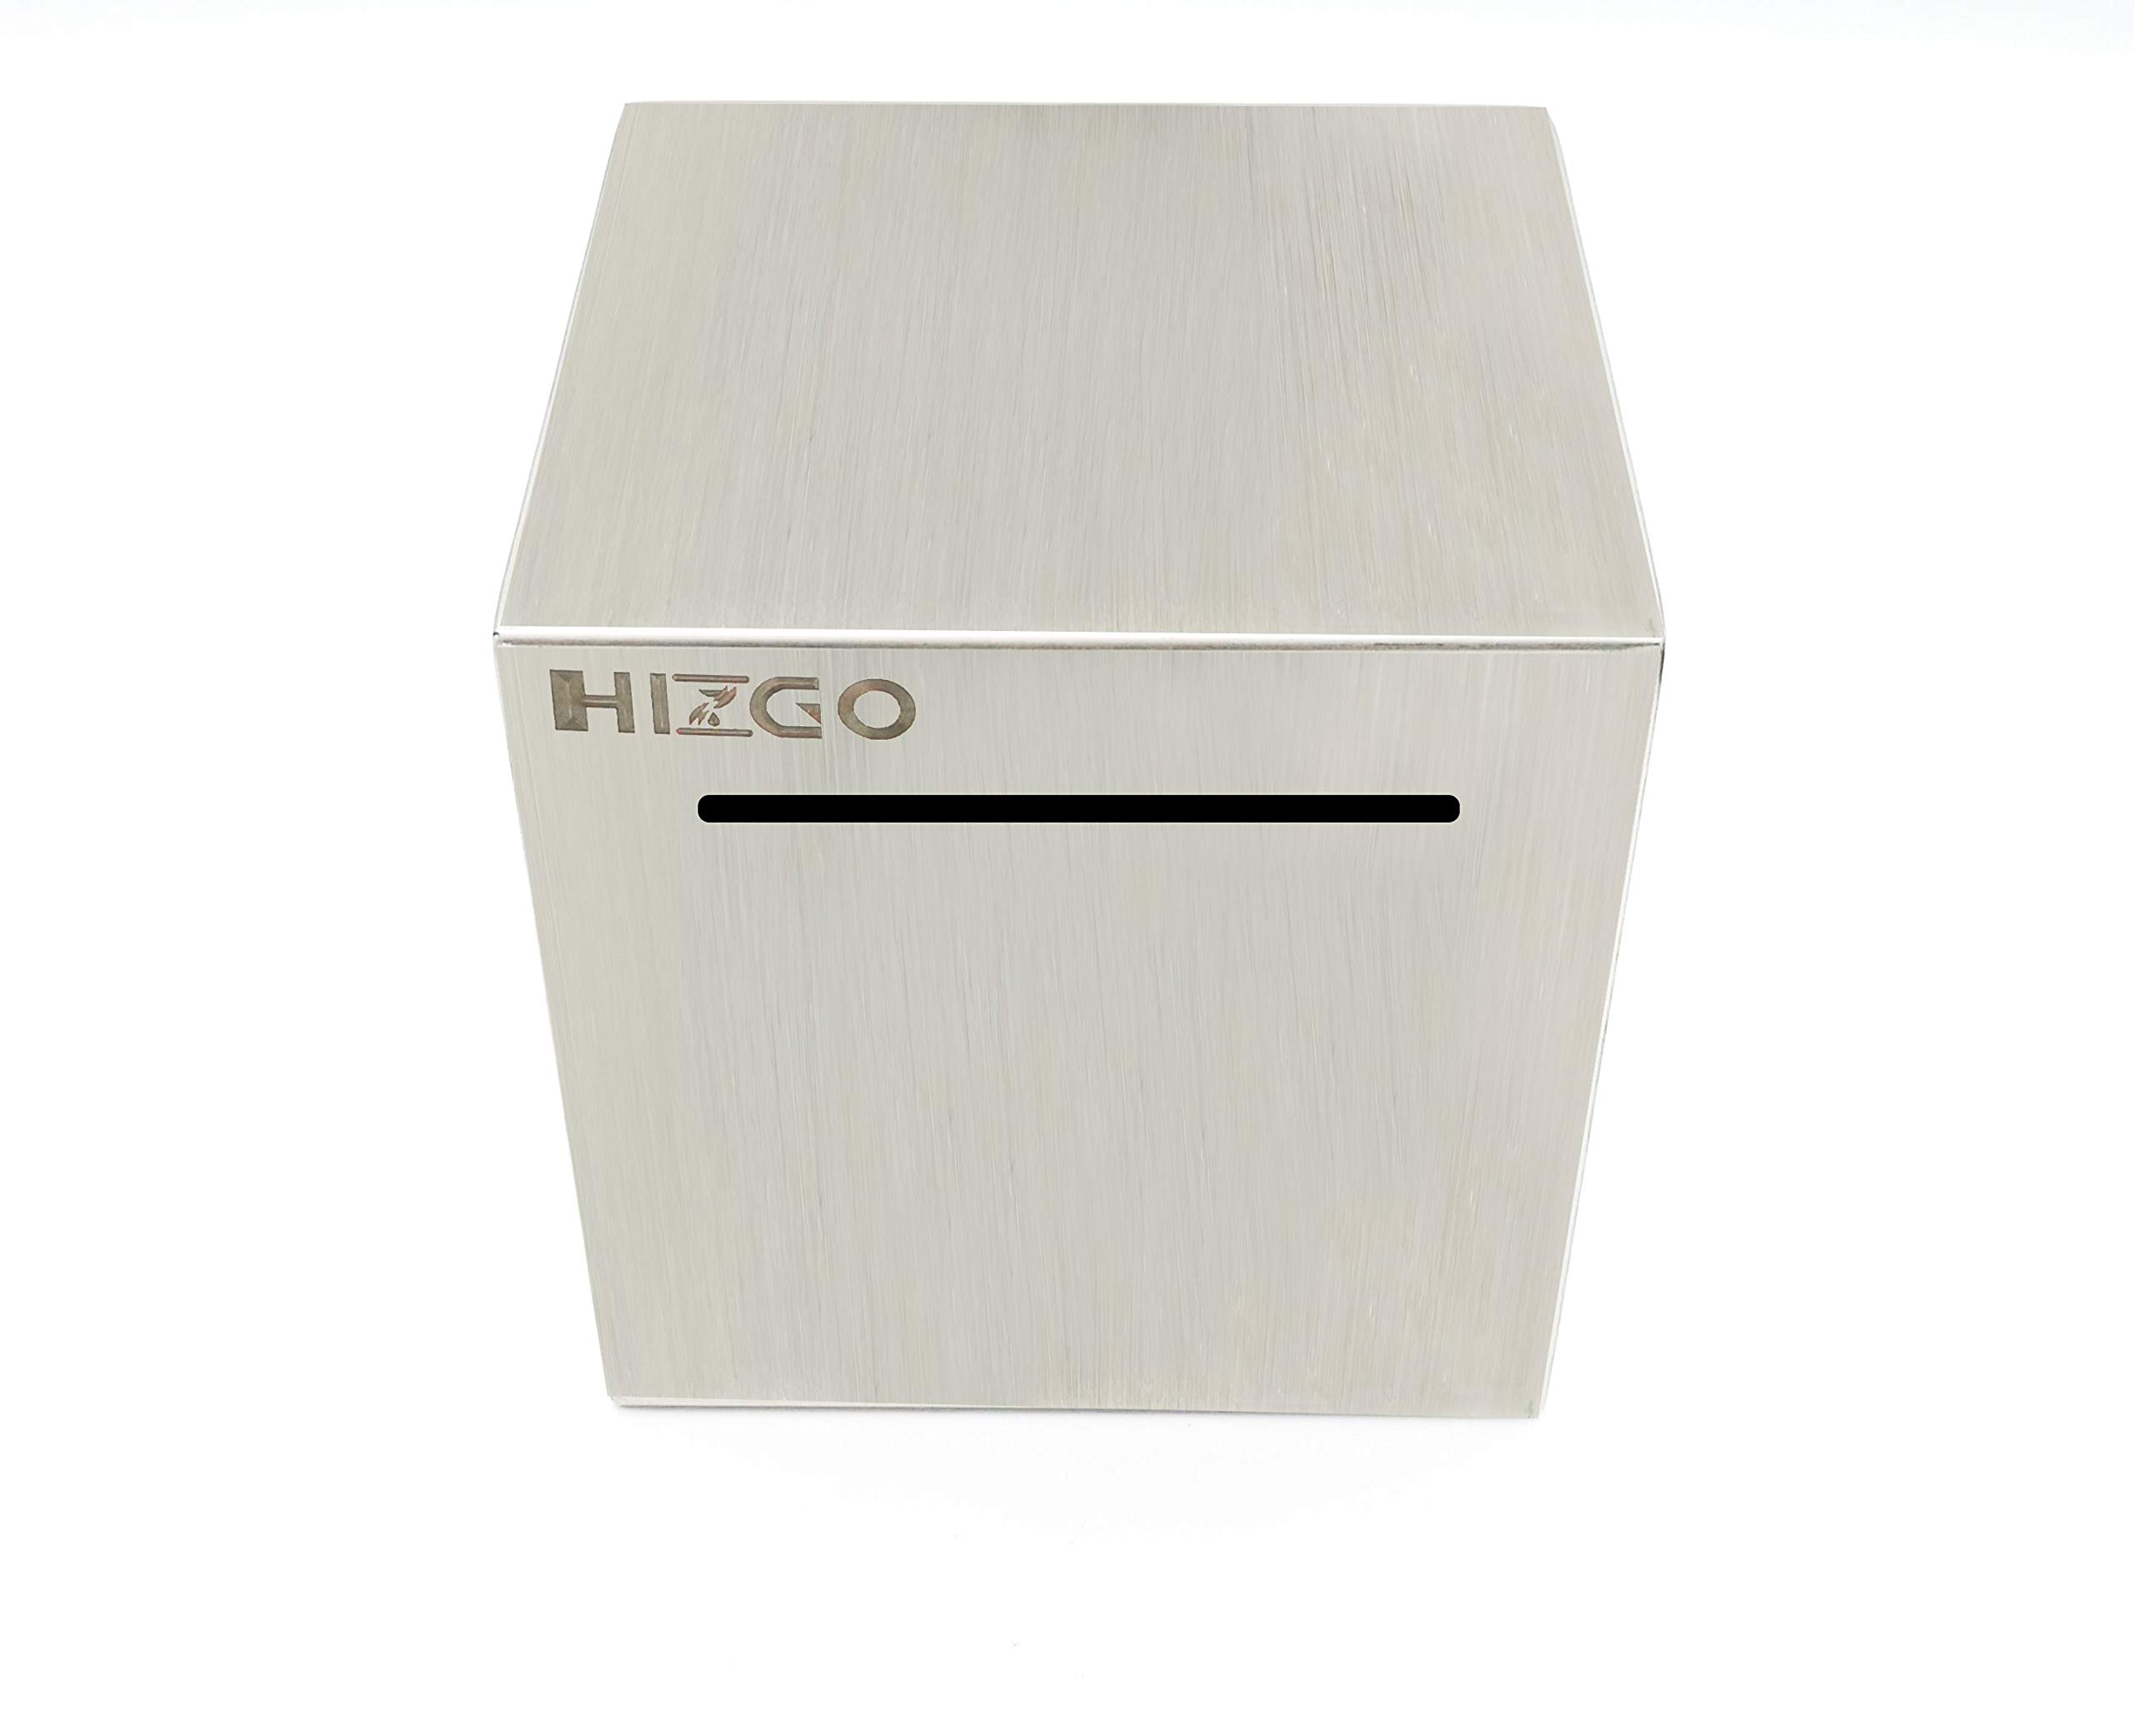 HIZGO Safe Piggy Bank Made Stainless Steel Adult Money Box Savings Bank for Kids Can Only Save Cannot Taken Out by HIZGO